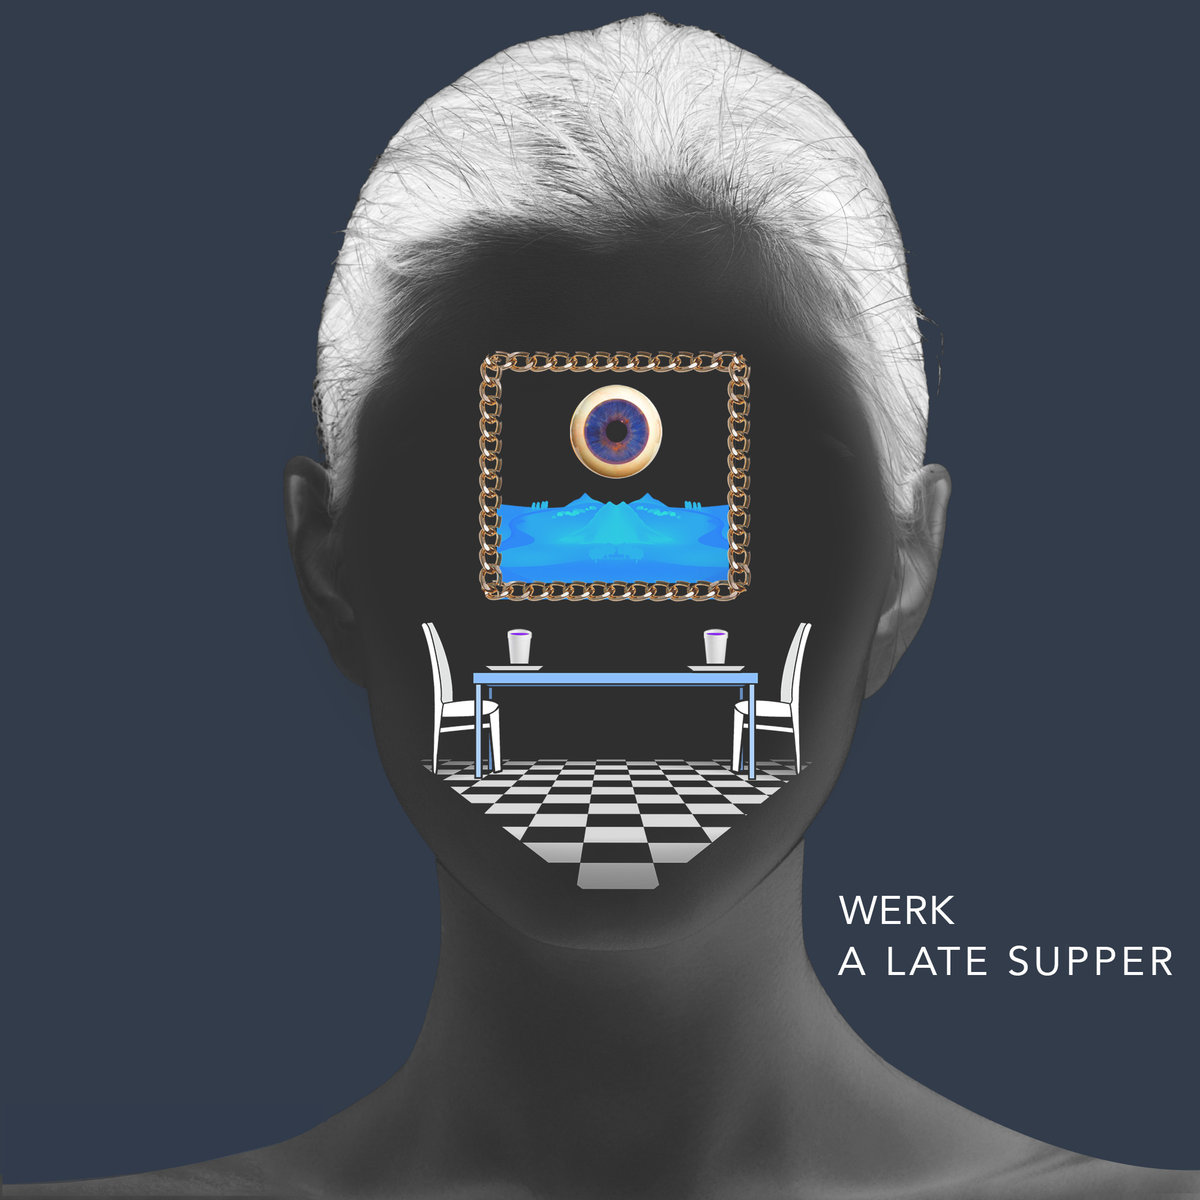 WERK - A Late Supper